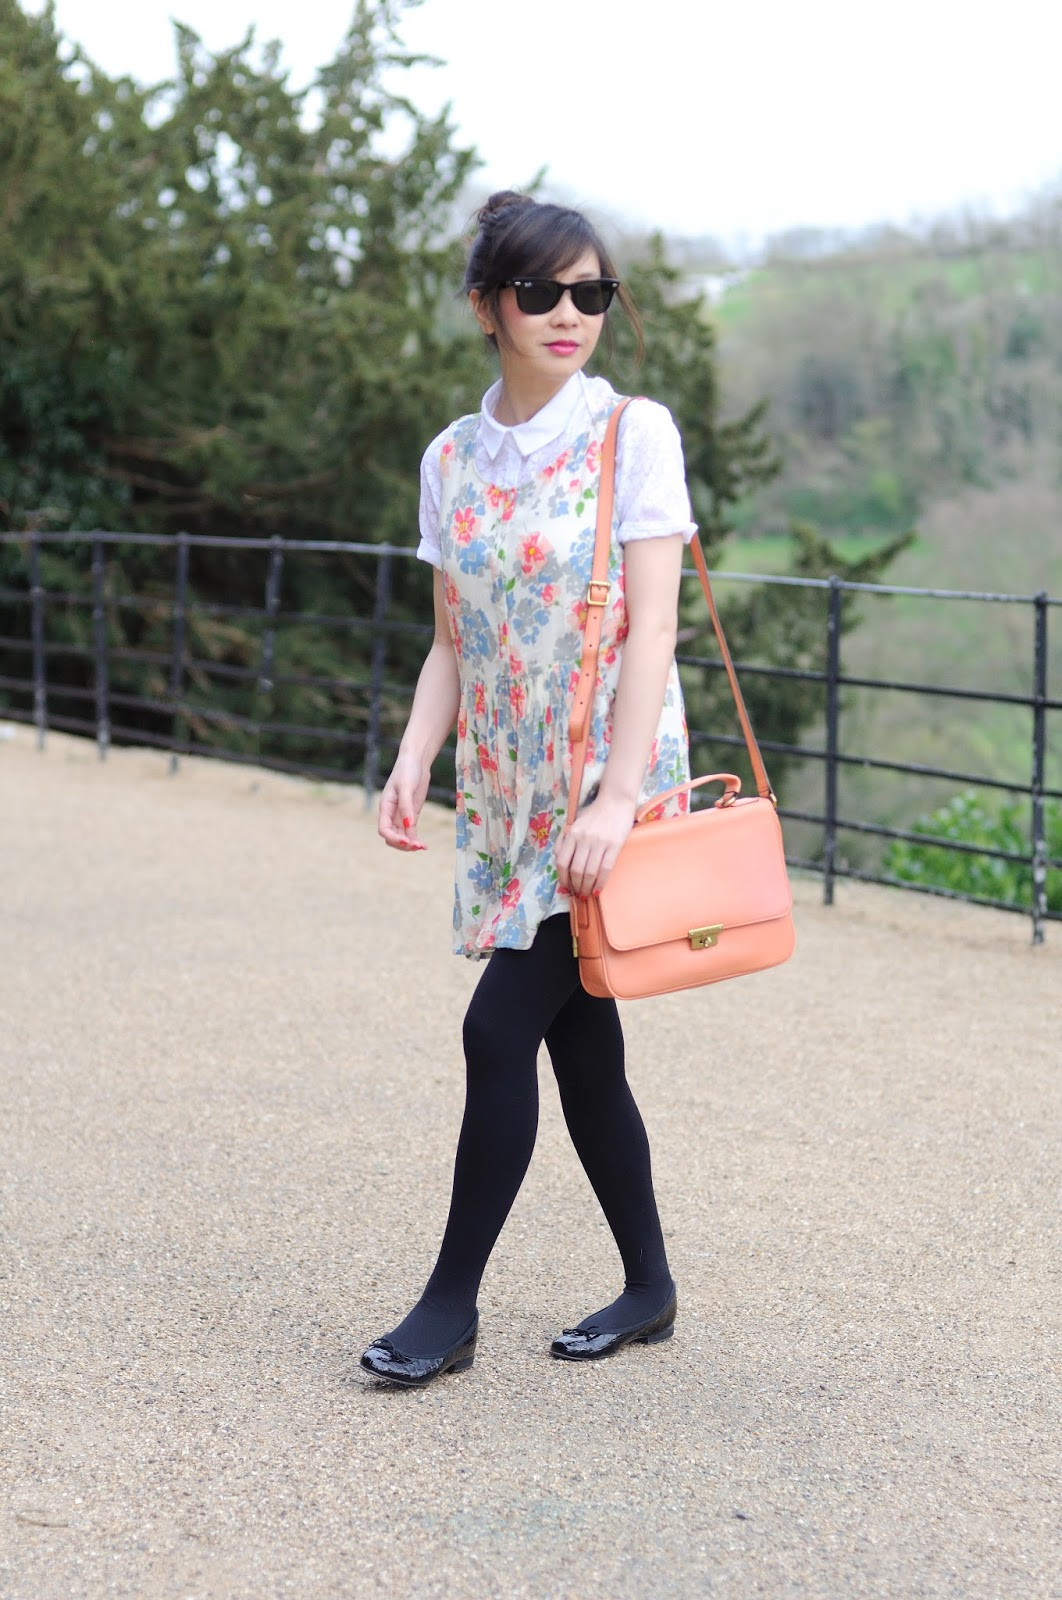 Primark spring summer, primark floral dress, how to layer a dress with blouse